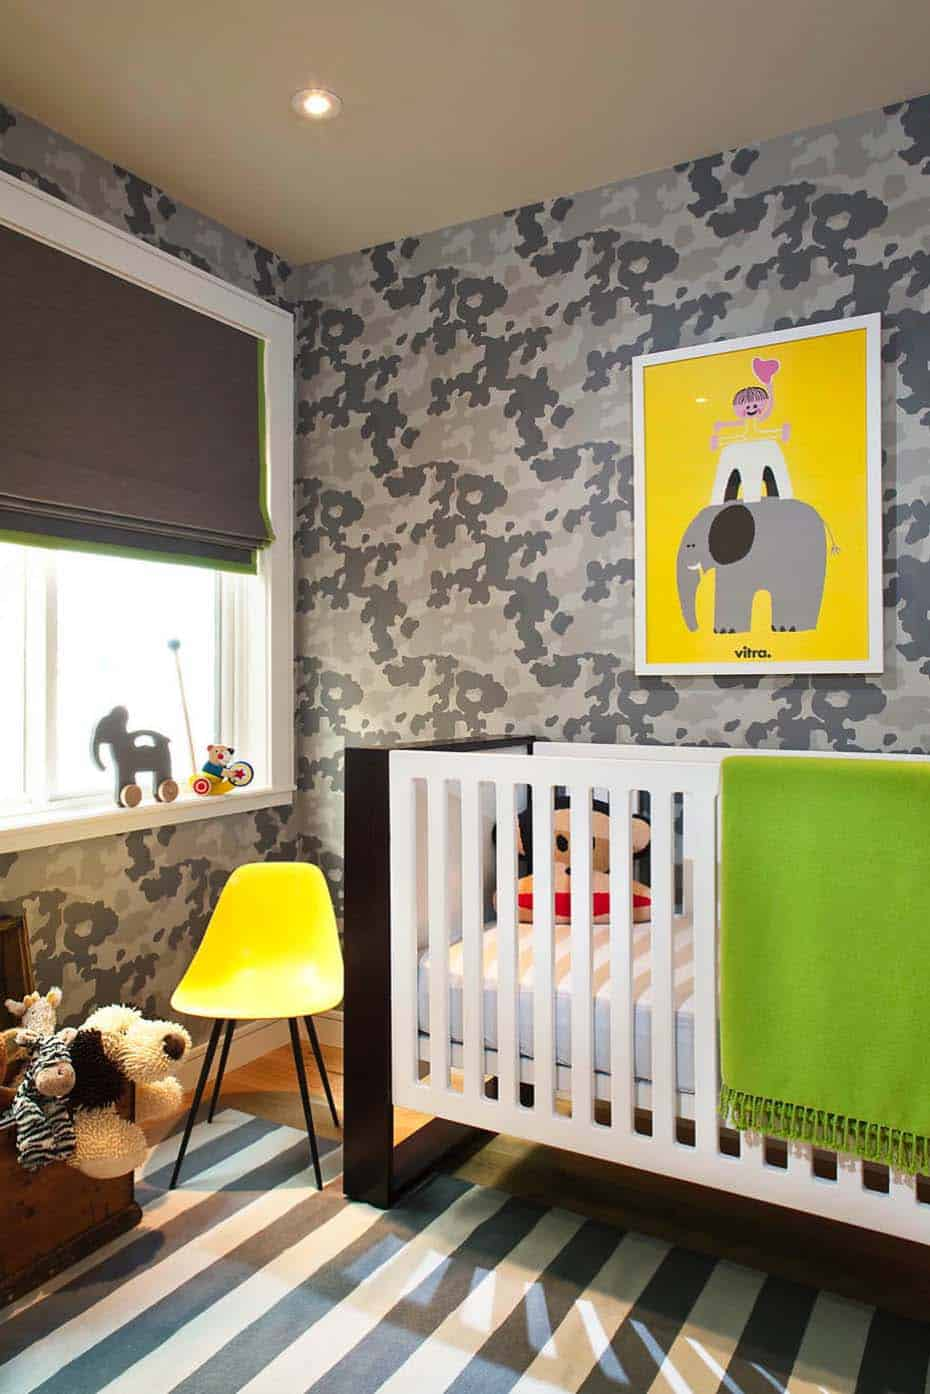 Stylish Nursery Decorating Ideas-35-1 Kindesign